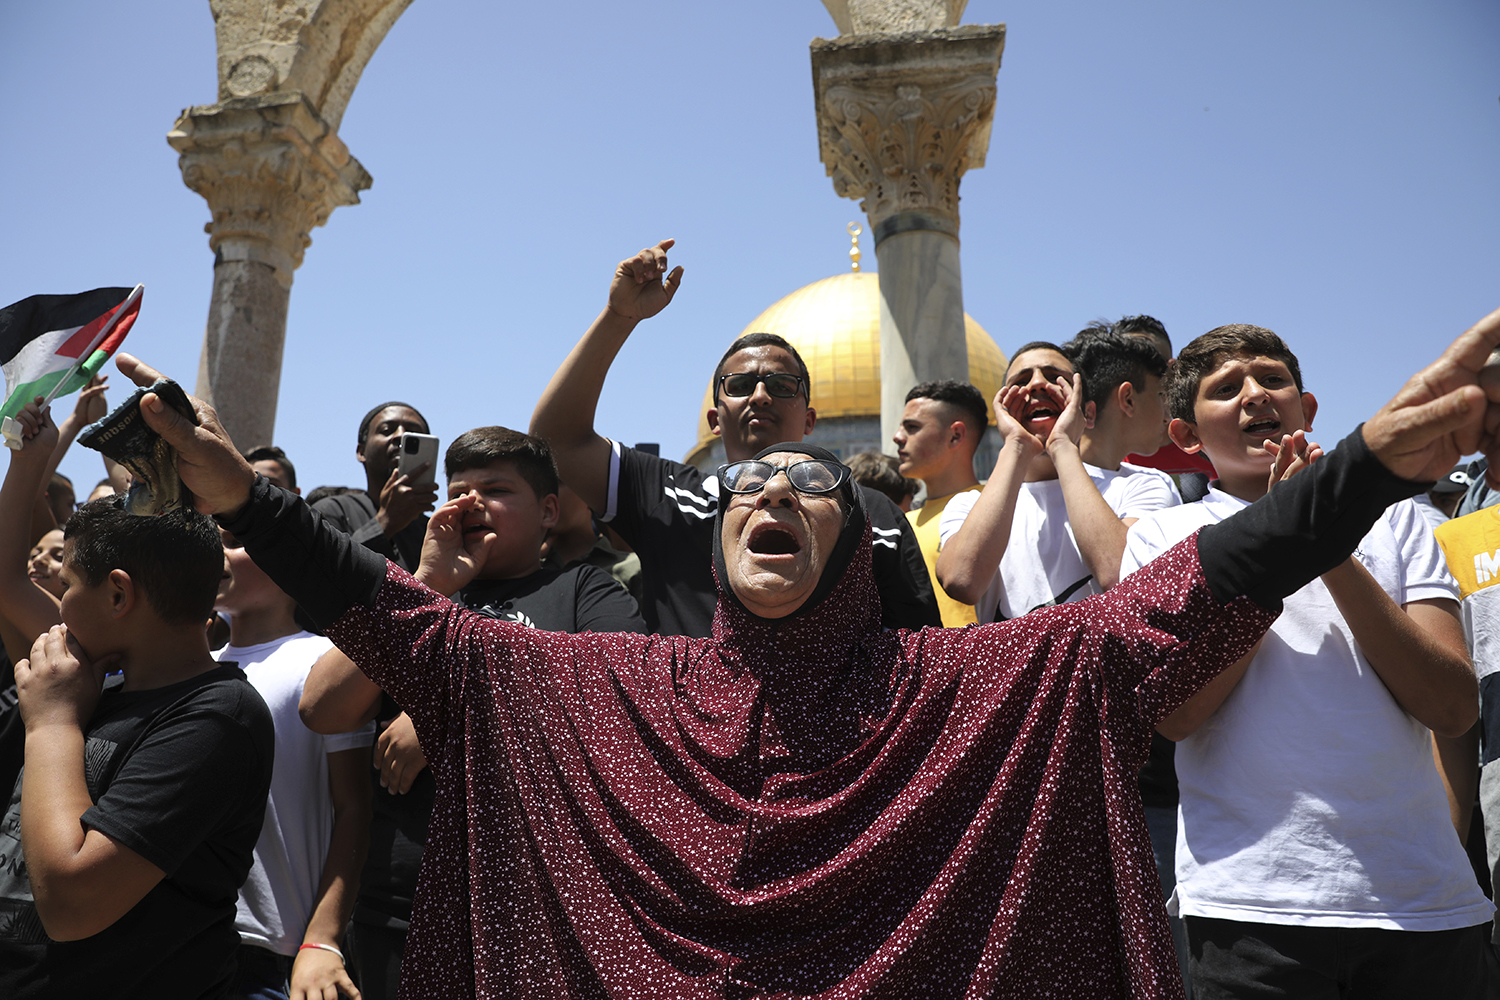 Palestinians chant slogans at a protest following Friday prayers at the Dome of the Rock Mosque at the Al-Aqsa Mosque compound in the Old City of Jerusalem, Friday, May 28, 2021. (AP Photo/Mahmoud Illean)